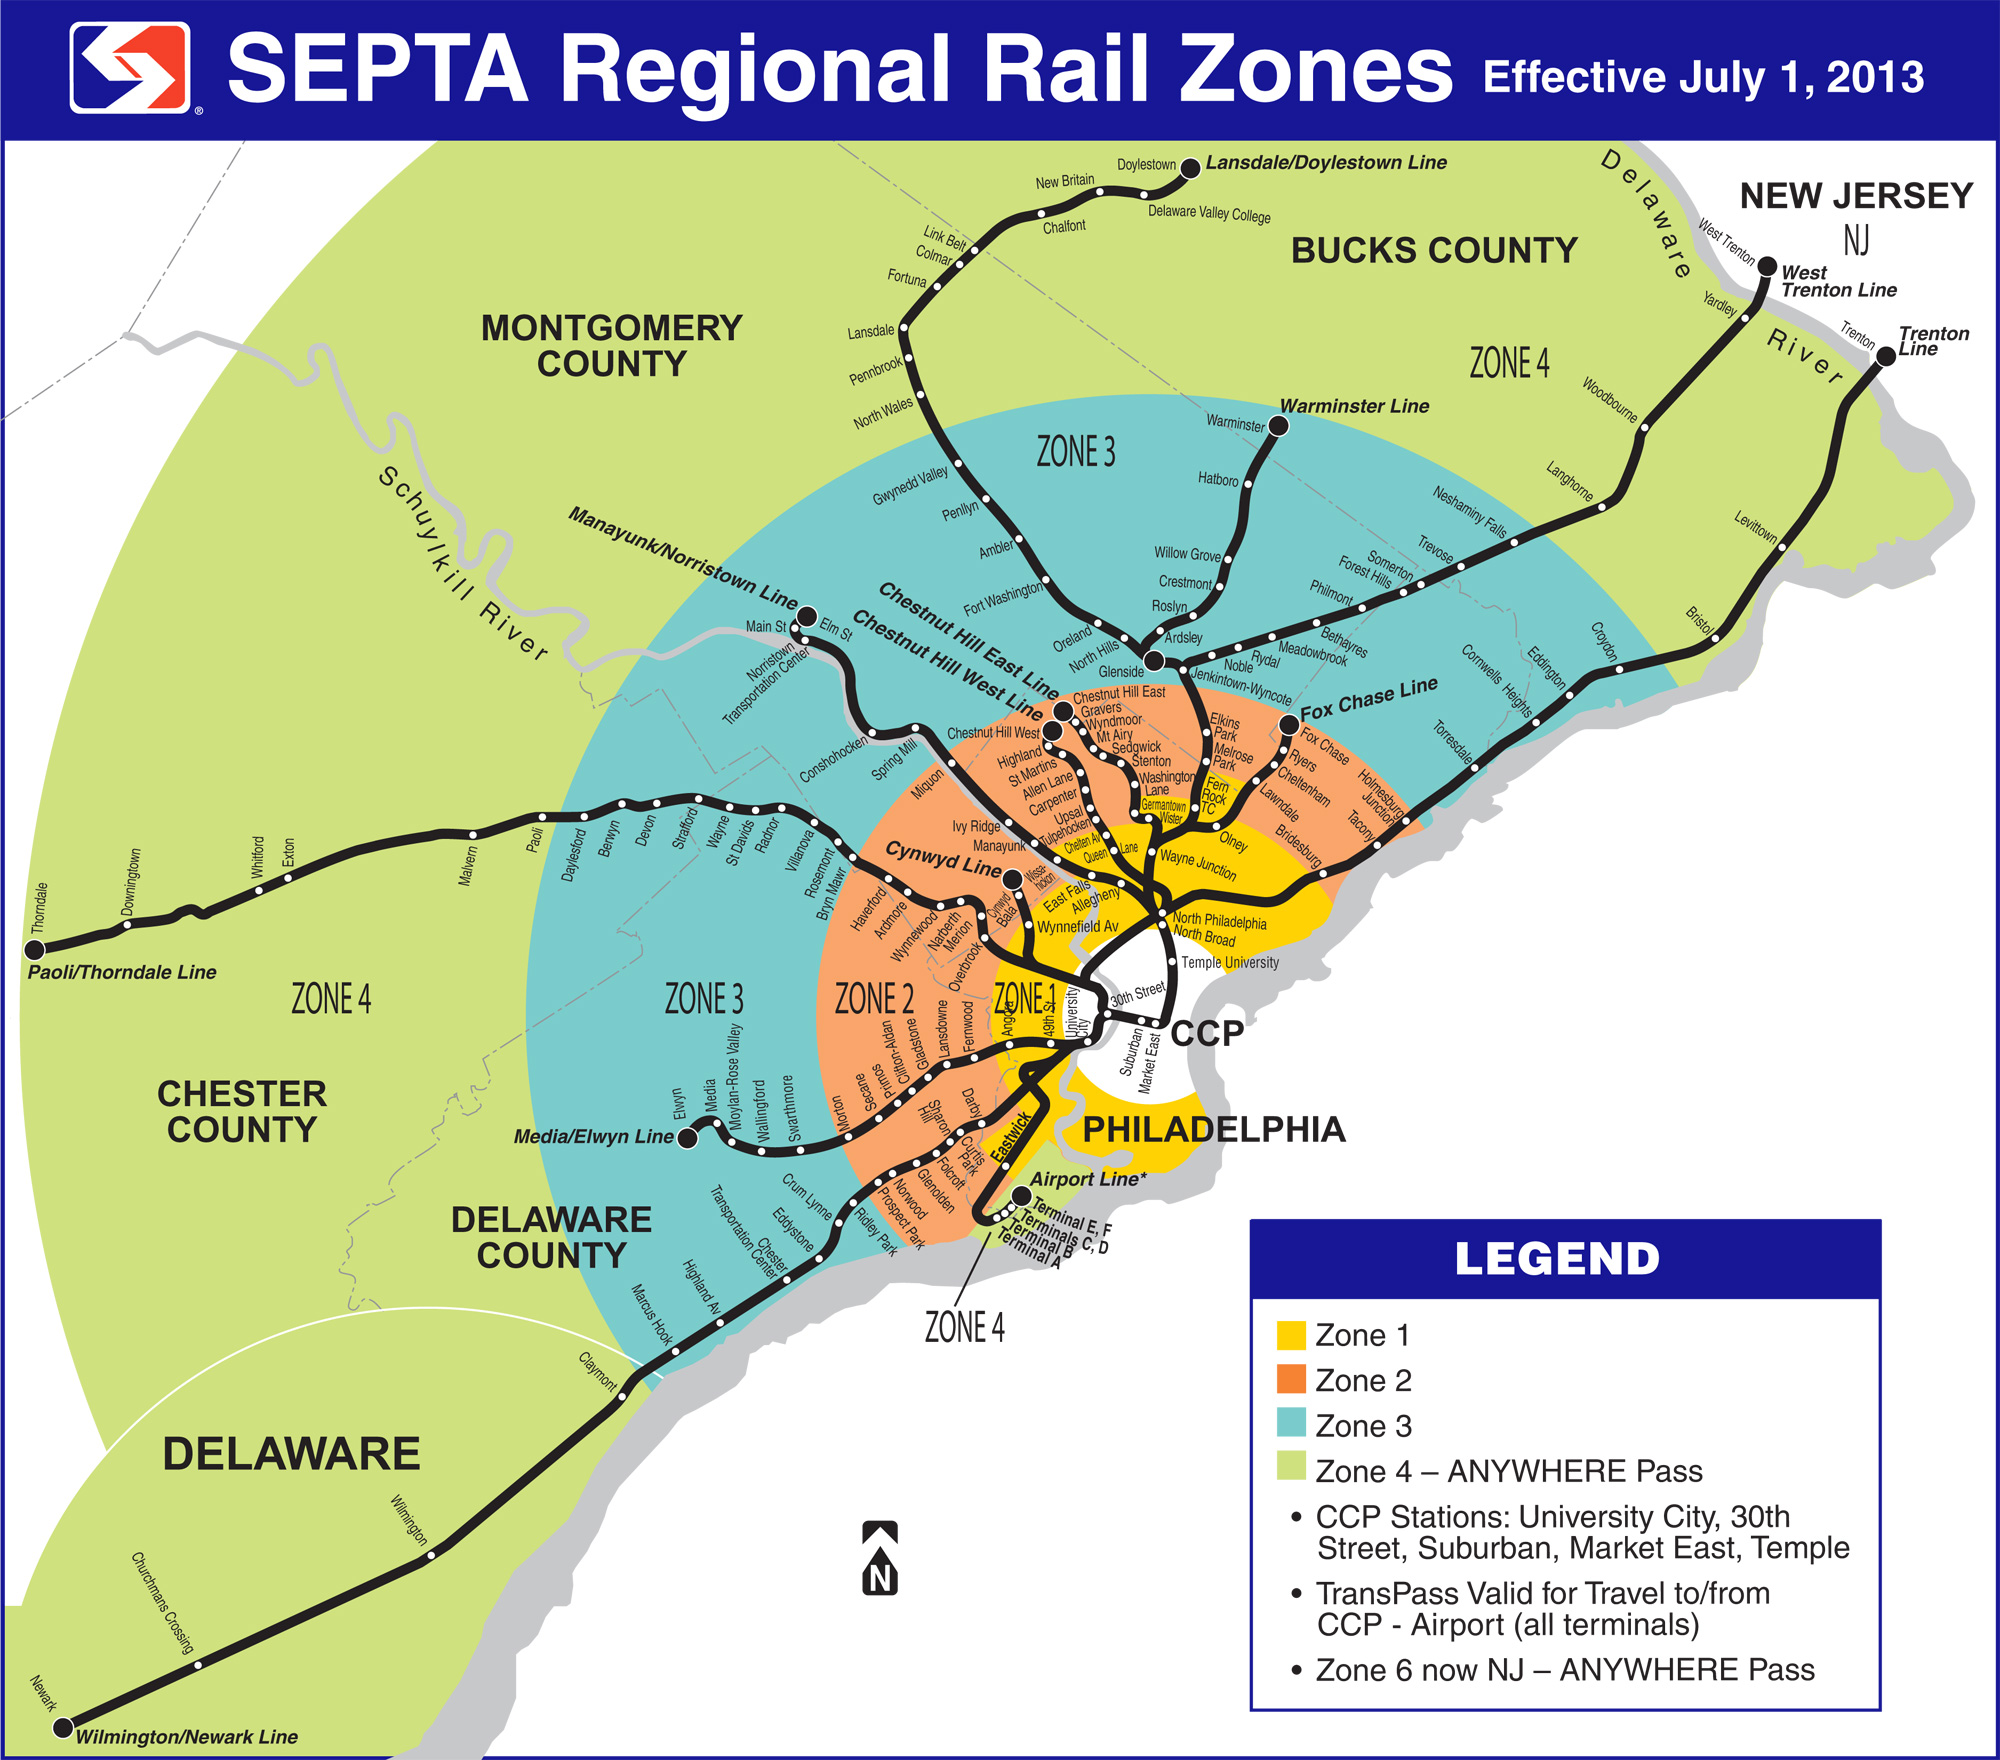 Proposed SEPTA Regional Rail systems and zones